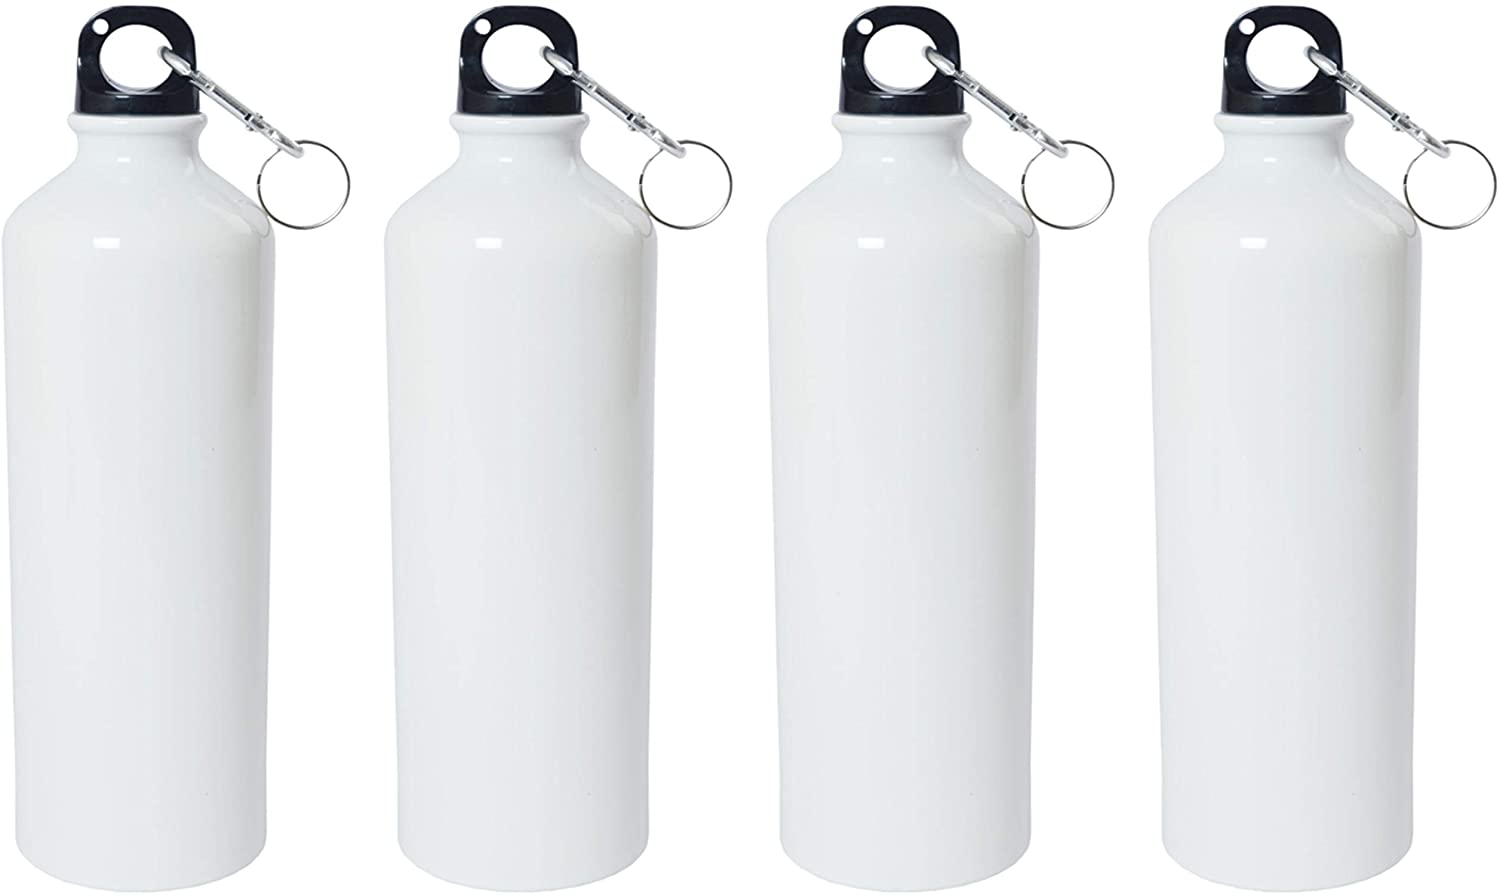 Crazy Sutra Classic Sipper Plain Water Bottle/Sipper White - 600Ml (SipperWhite4pcA)